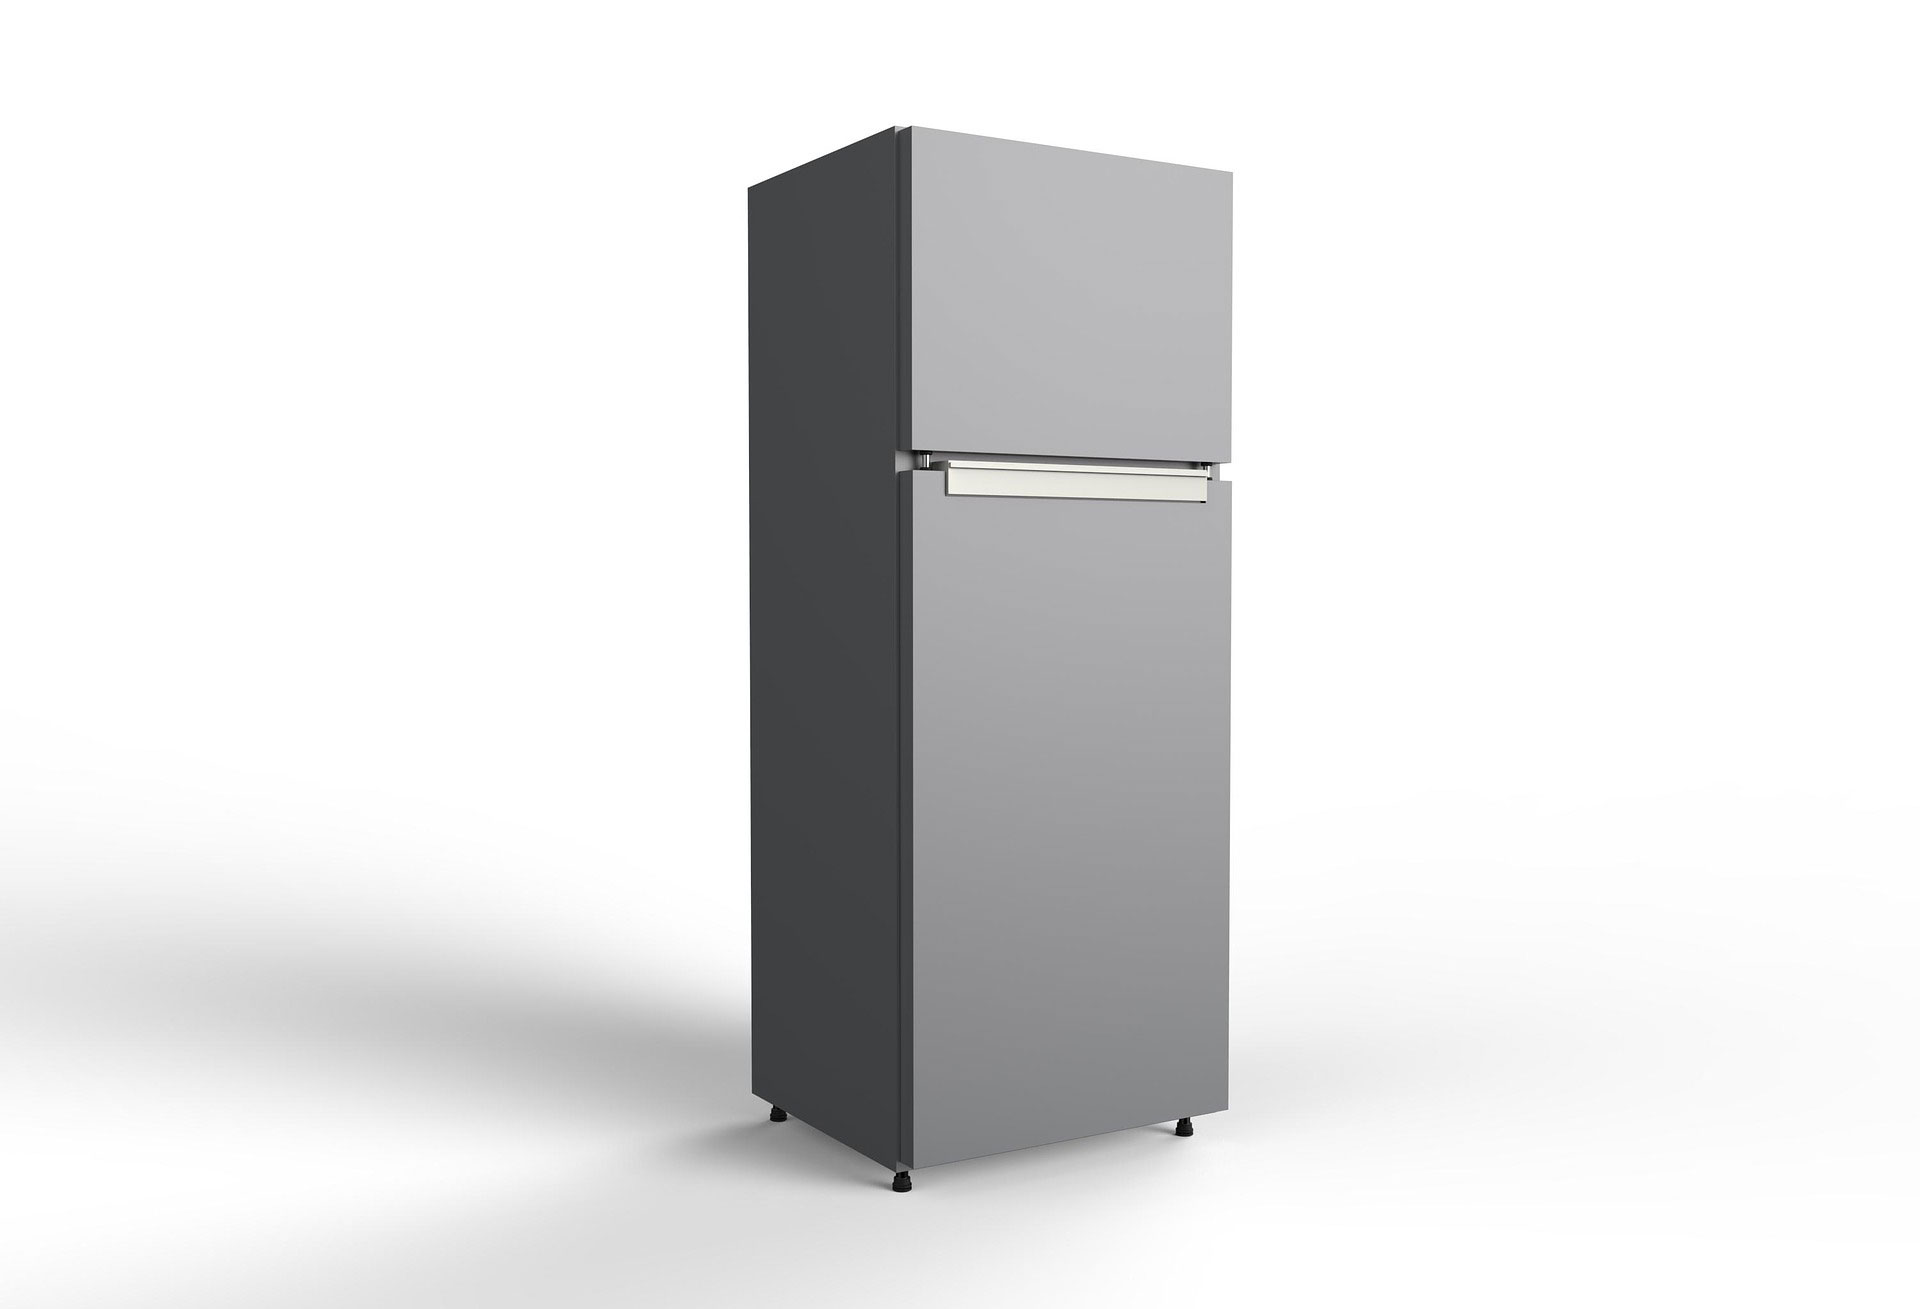 Lay a refrigerator on its side